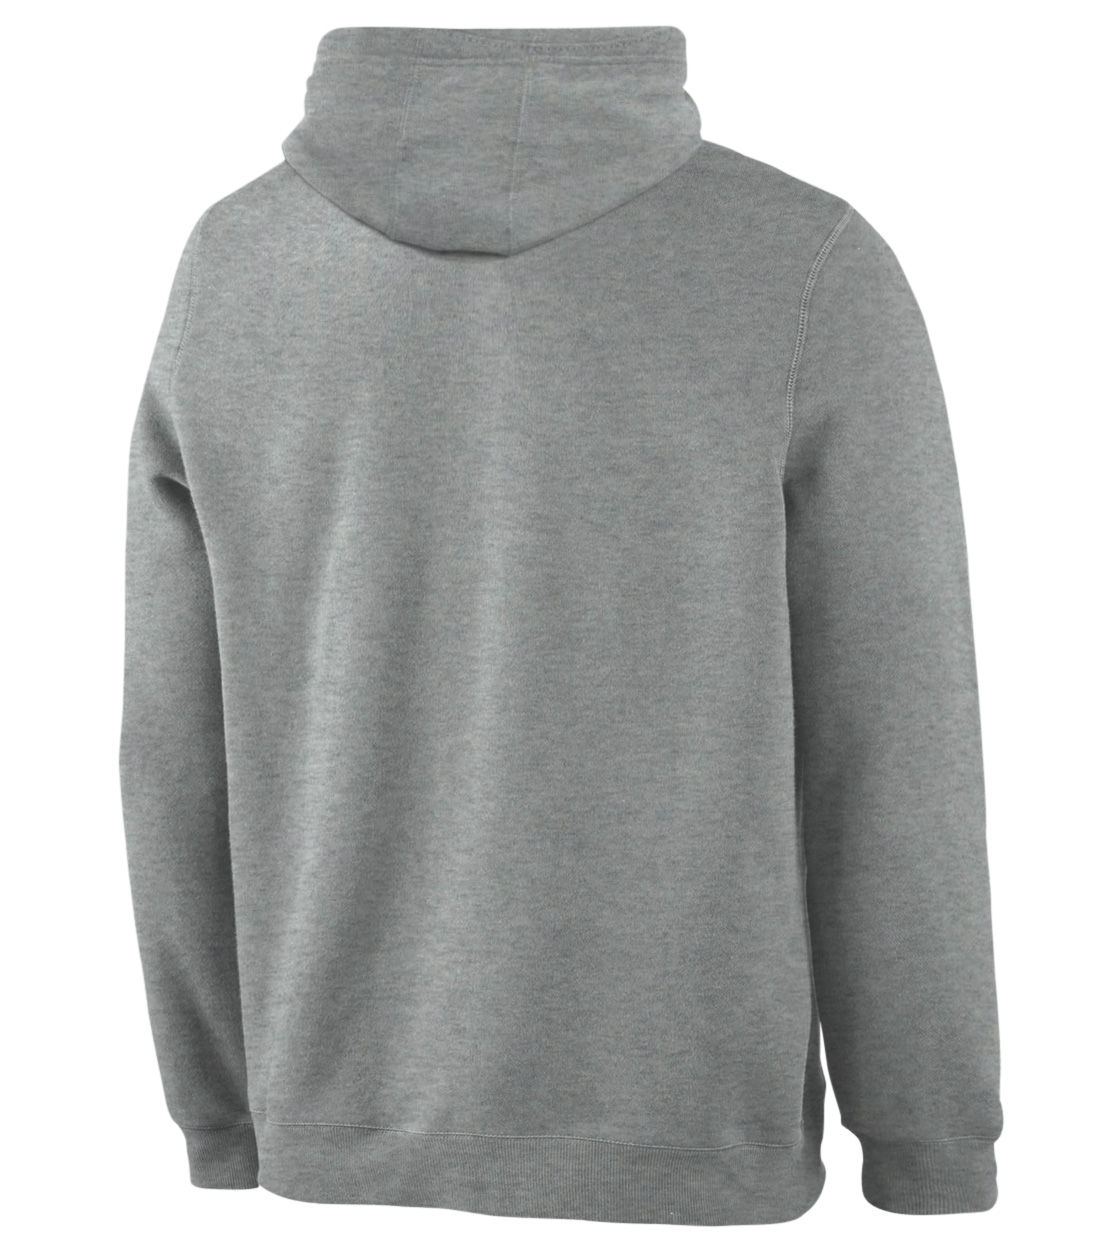 Dallas Cowboys Hoodie (HD-grey-218-NFL-DLC-COWBOYS)